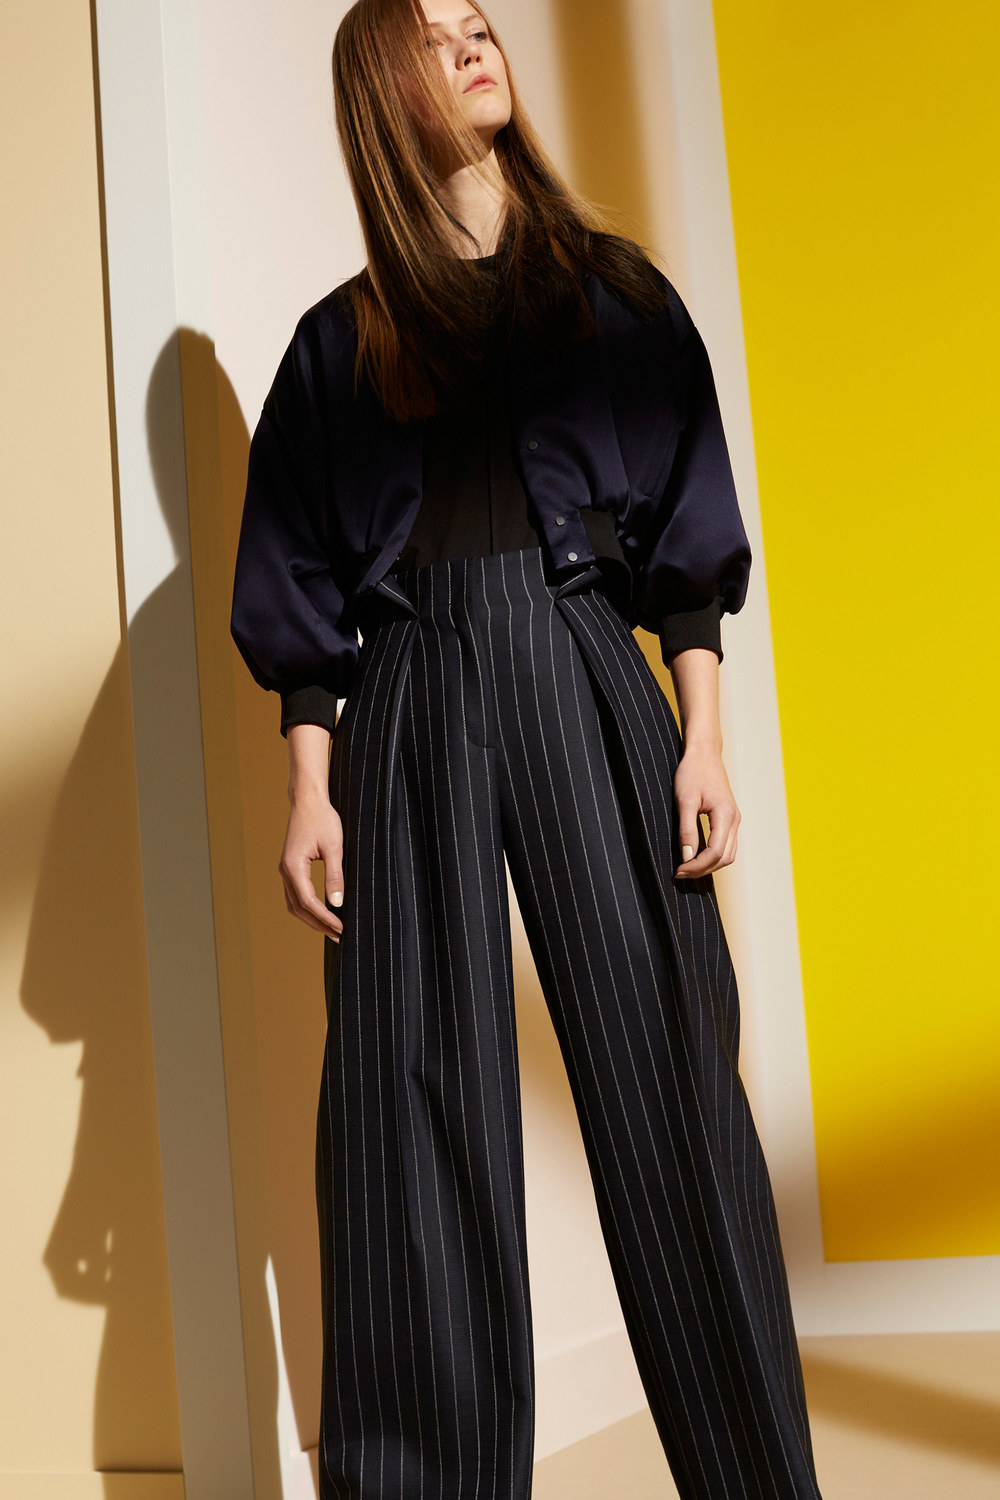 victoria-victoria-beckham-pre-fall-2016-lookbook-09.jpg